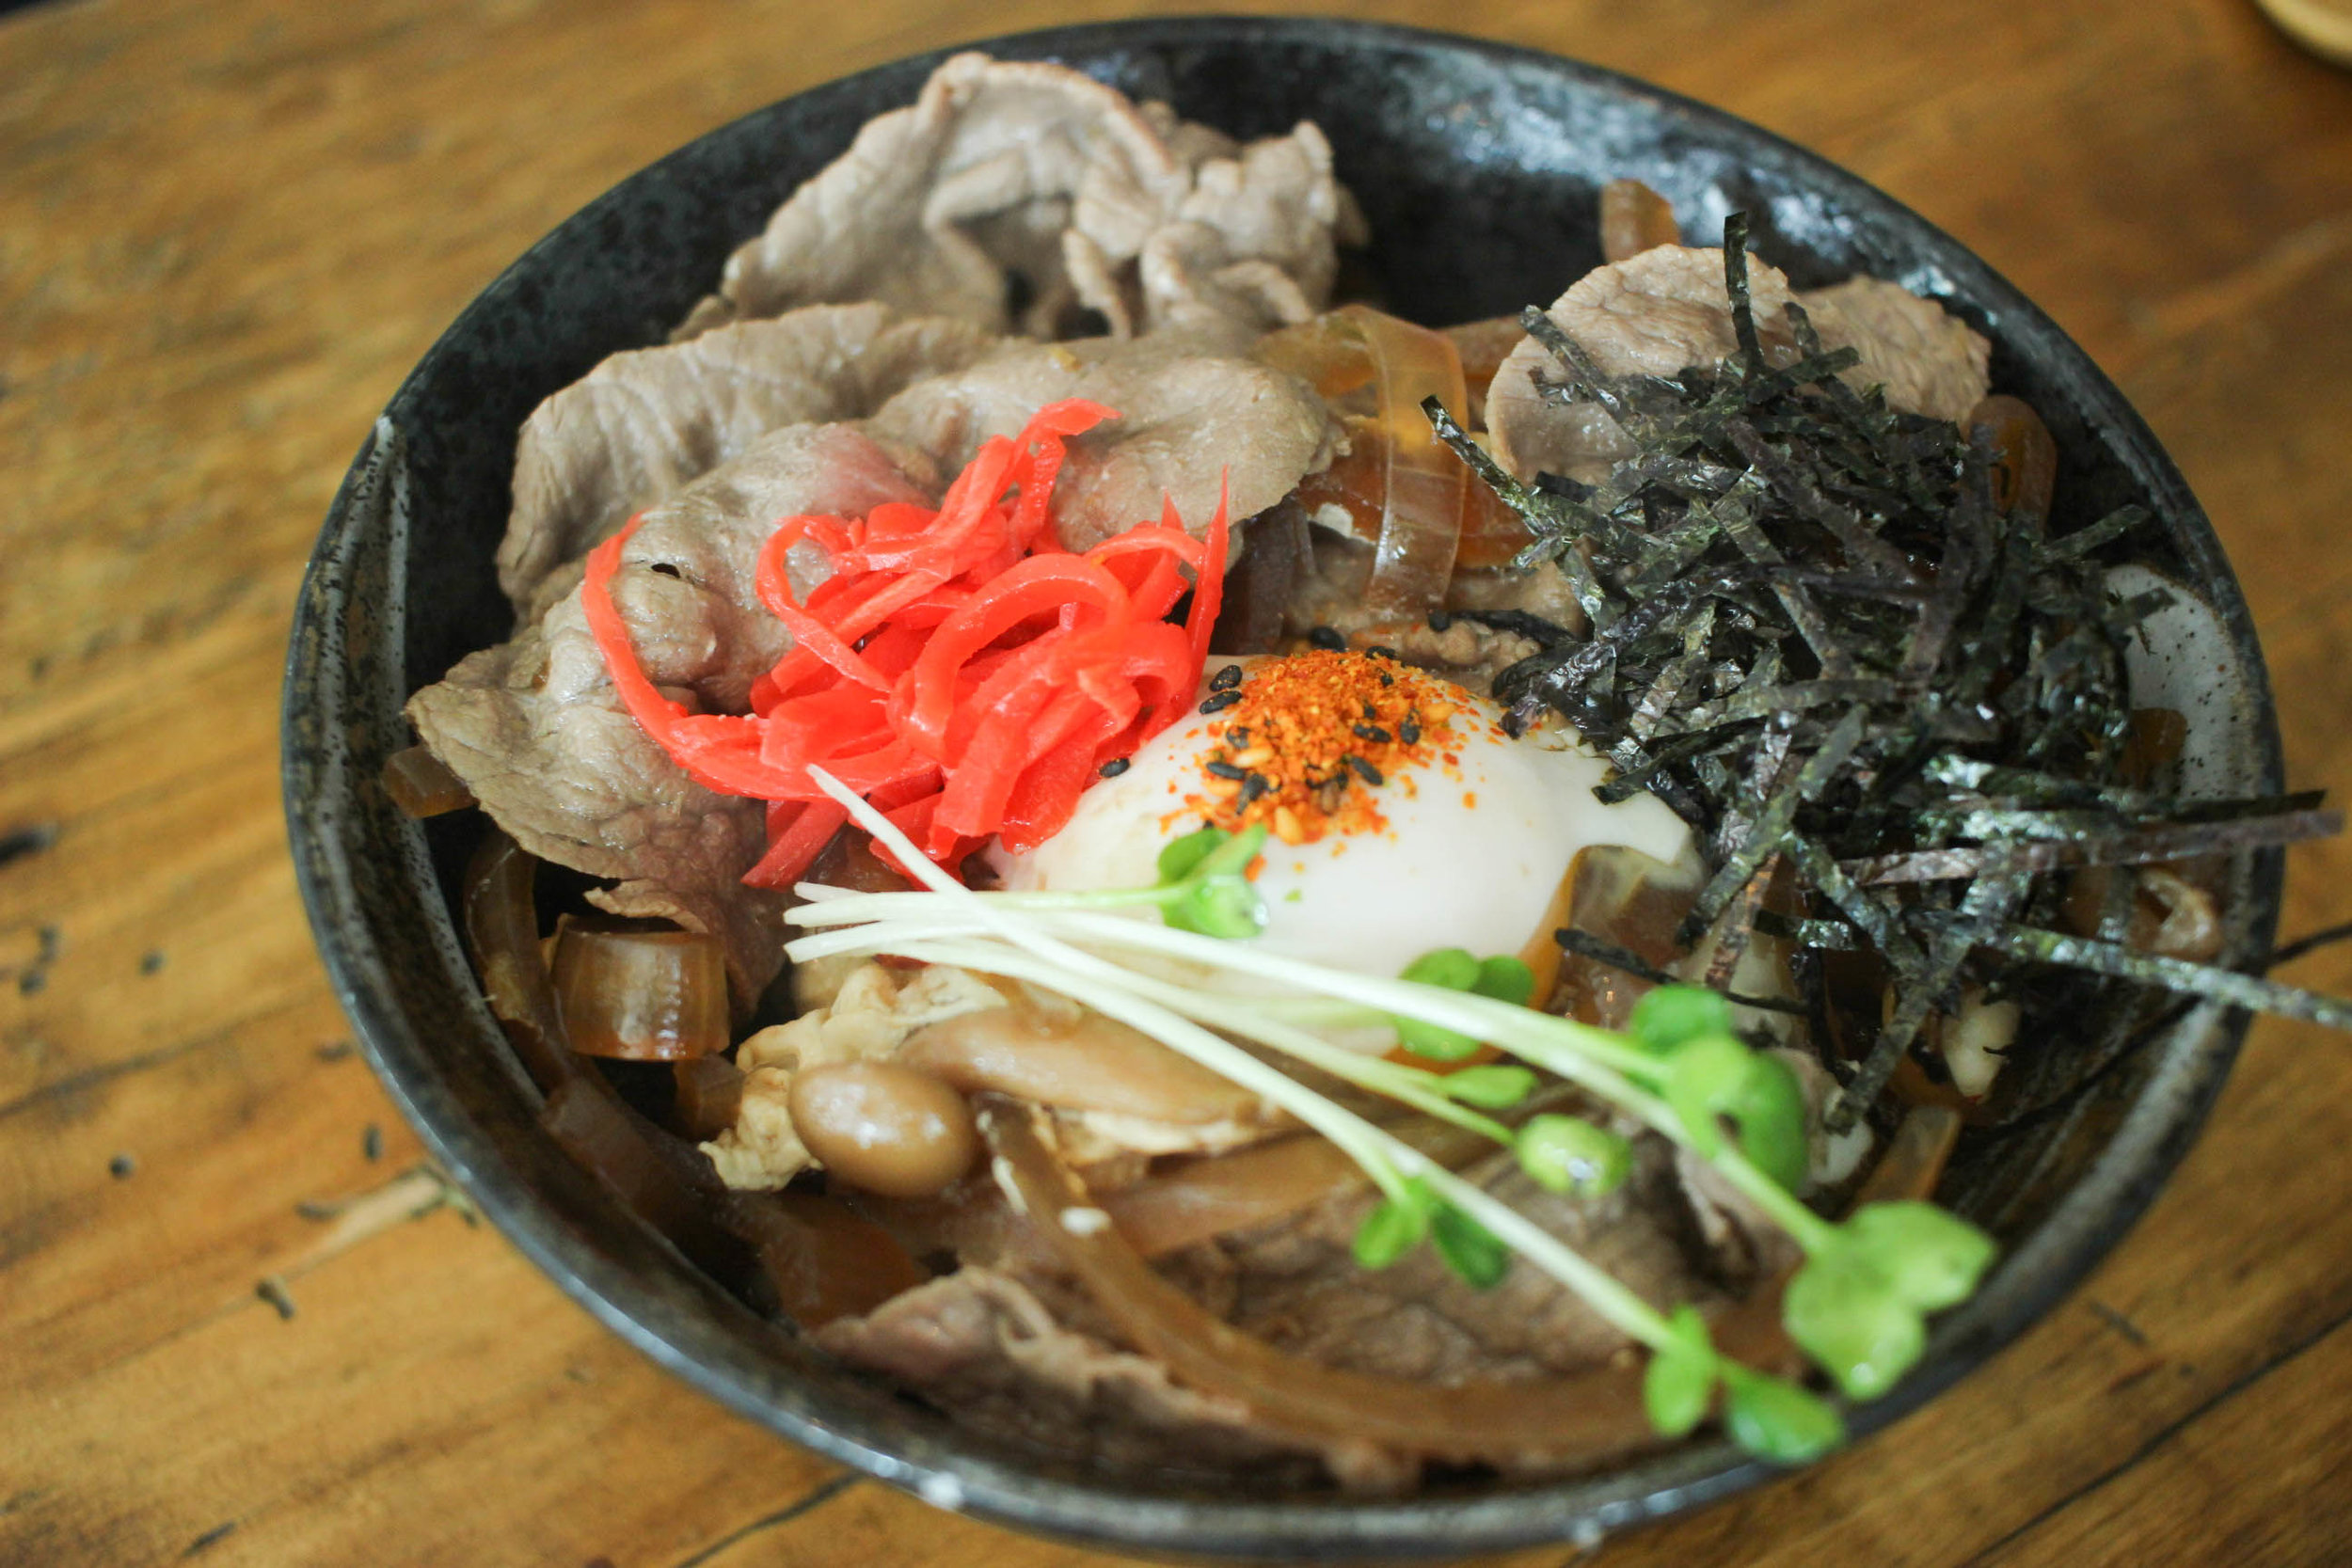 Gyodon: thinly sliced kobe beef, cooked in sweet ginger soy sauce with onions, served over rice with a poached egg.